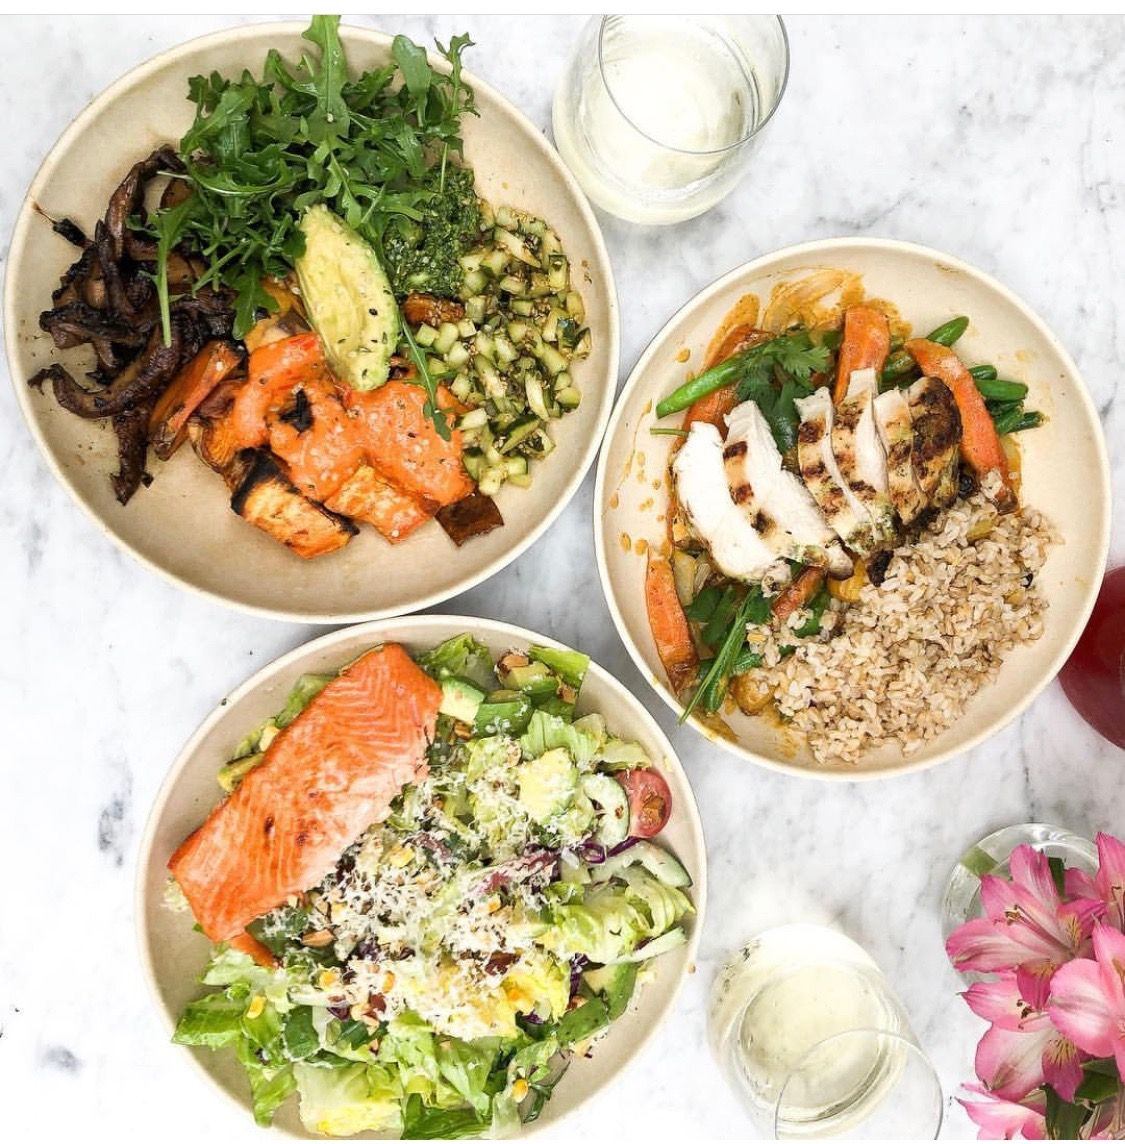 My Fave Healthy Restaurants In San Diego Shylah May